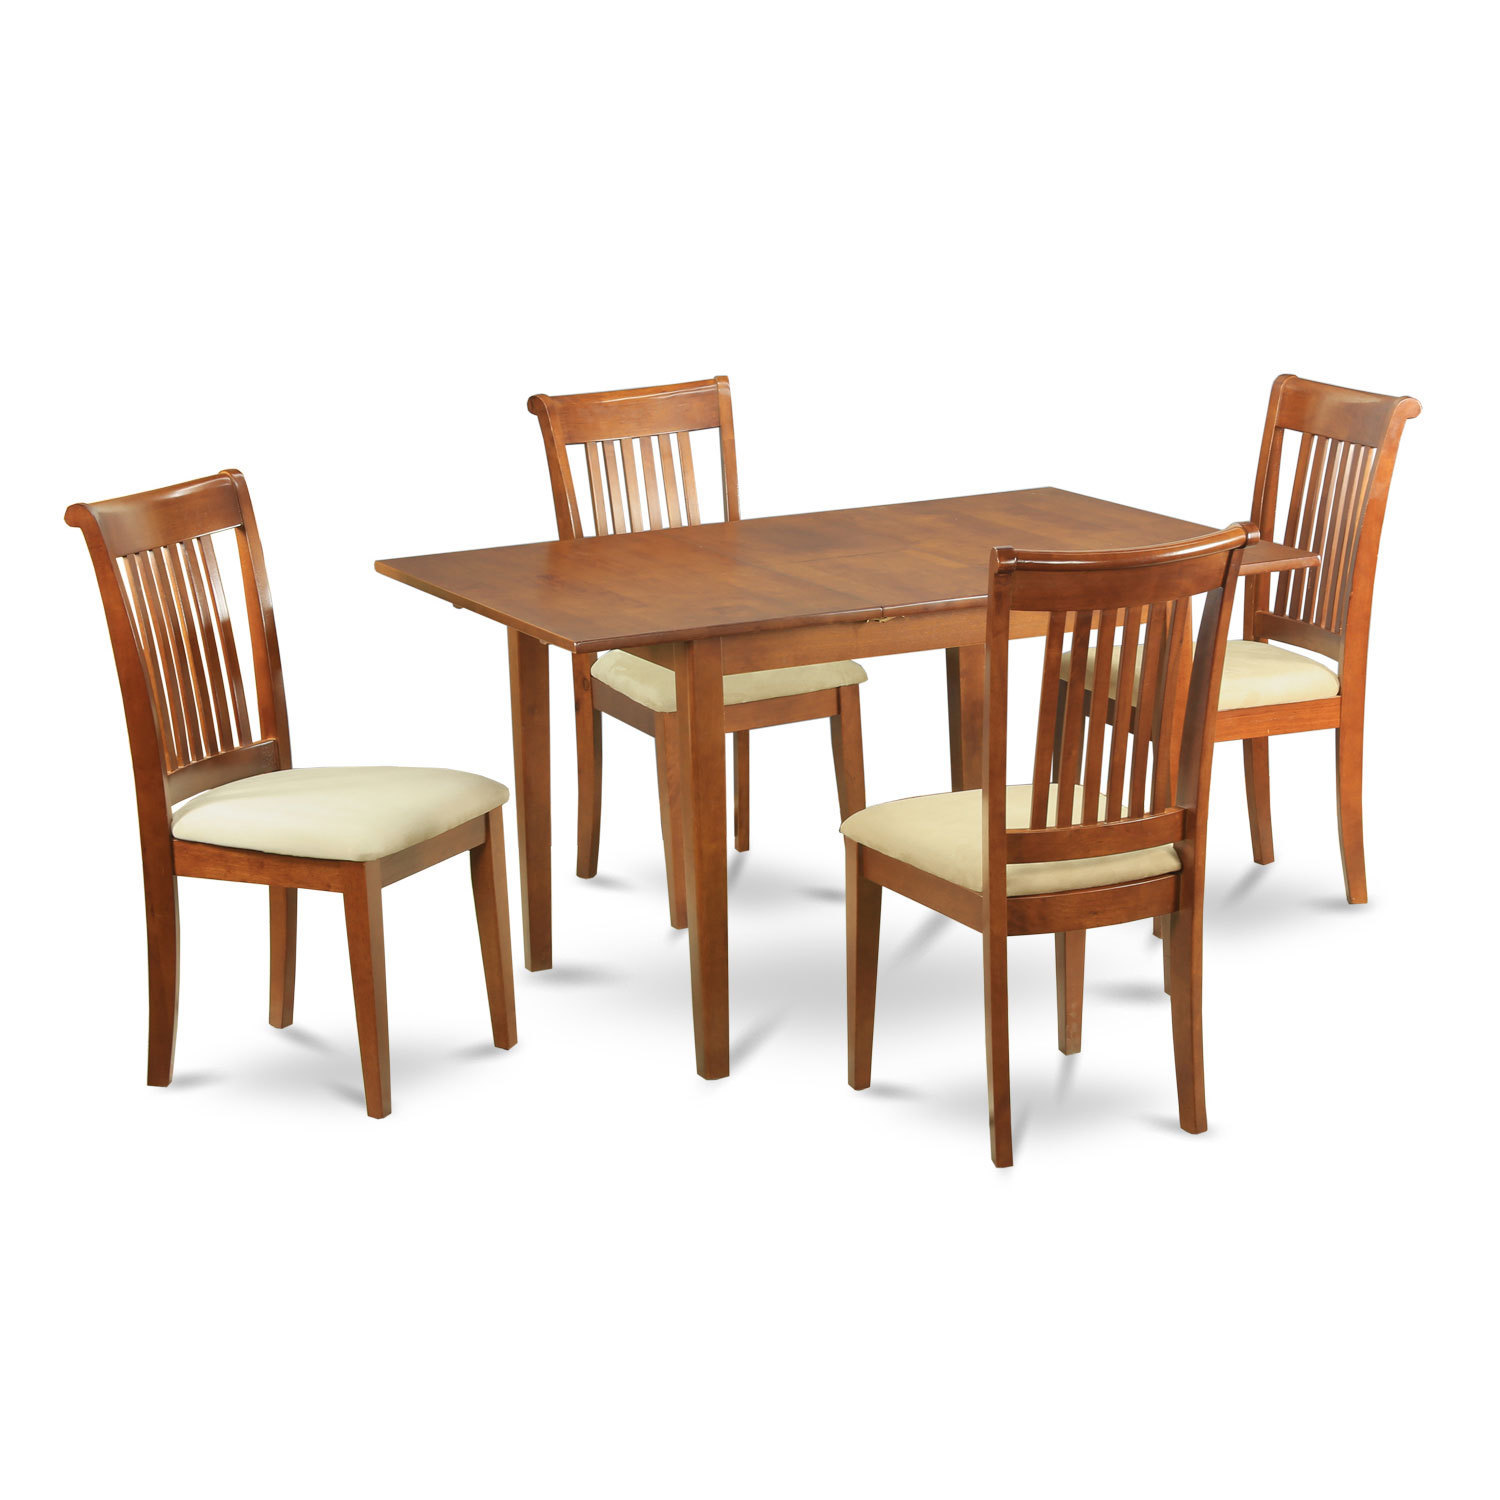 Small dinette set design homesfeed for Small table and 4 chair set